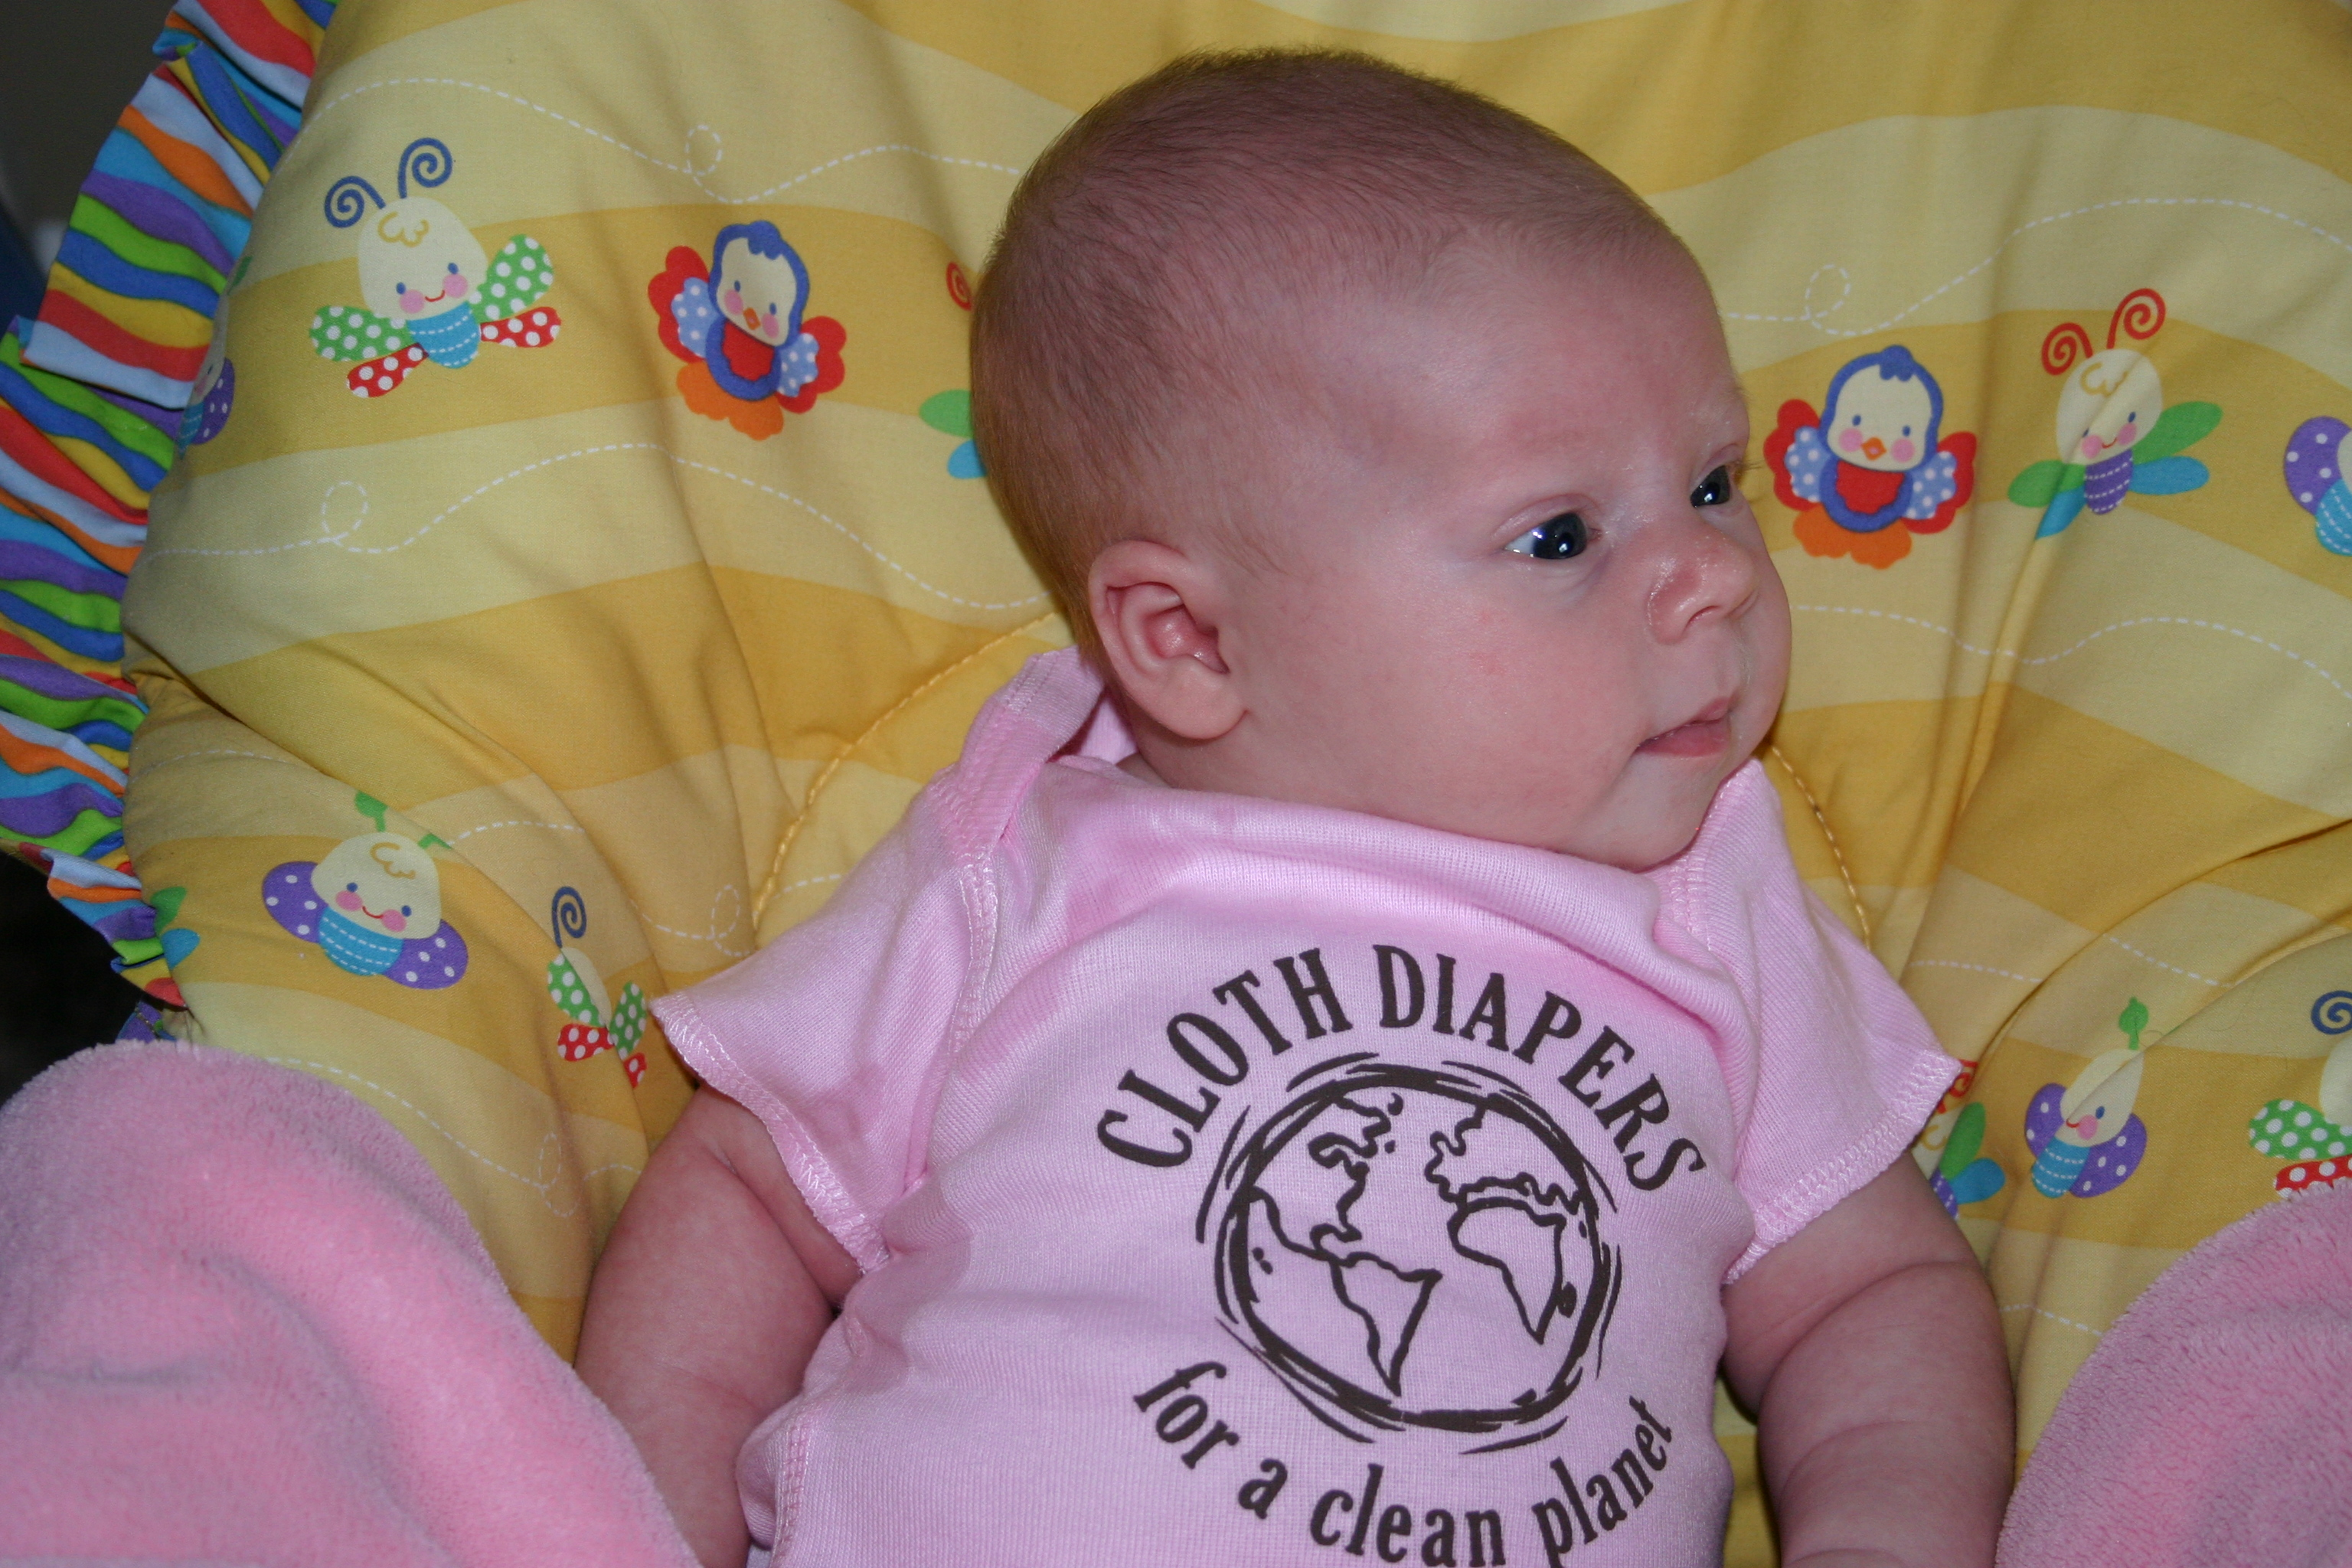 Cloth diapering where the sidewalk ends